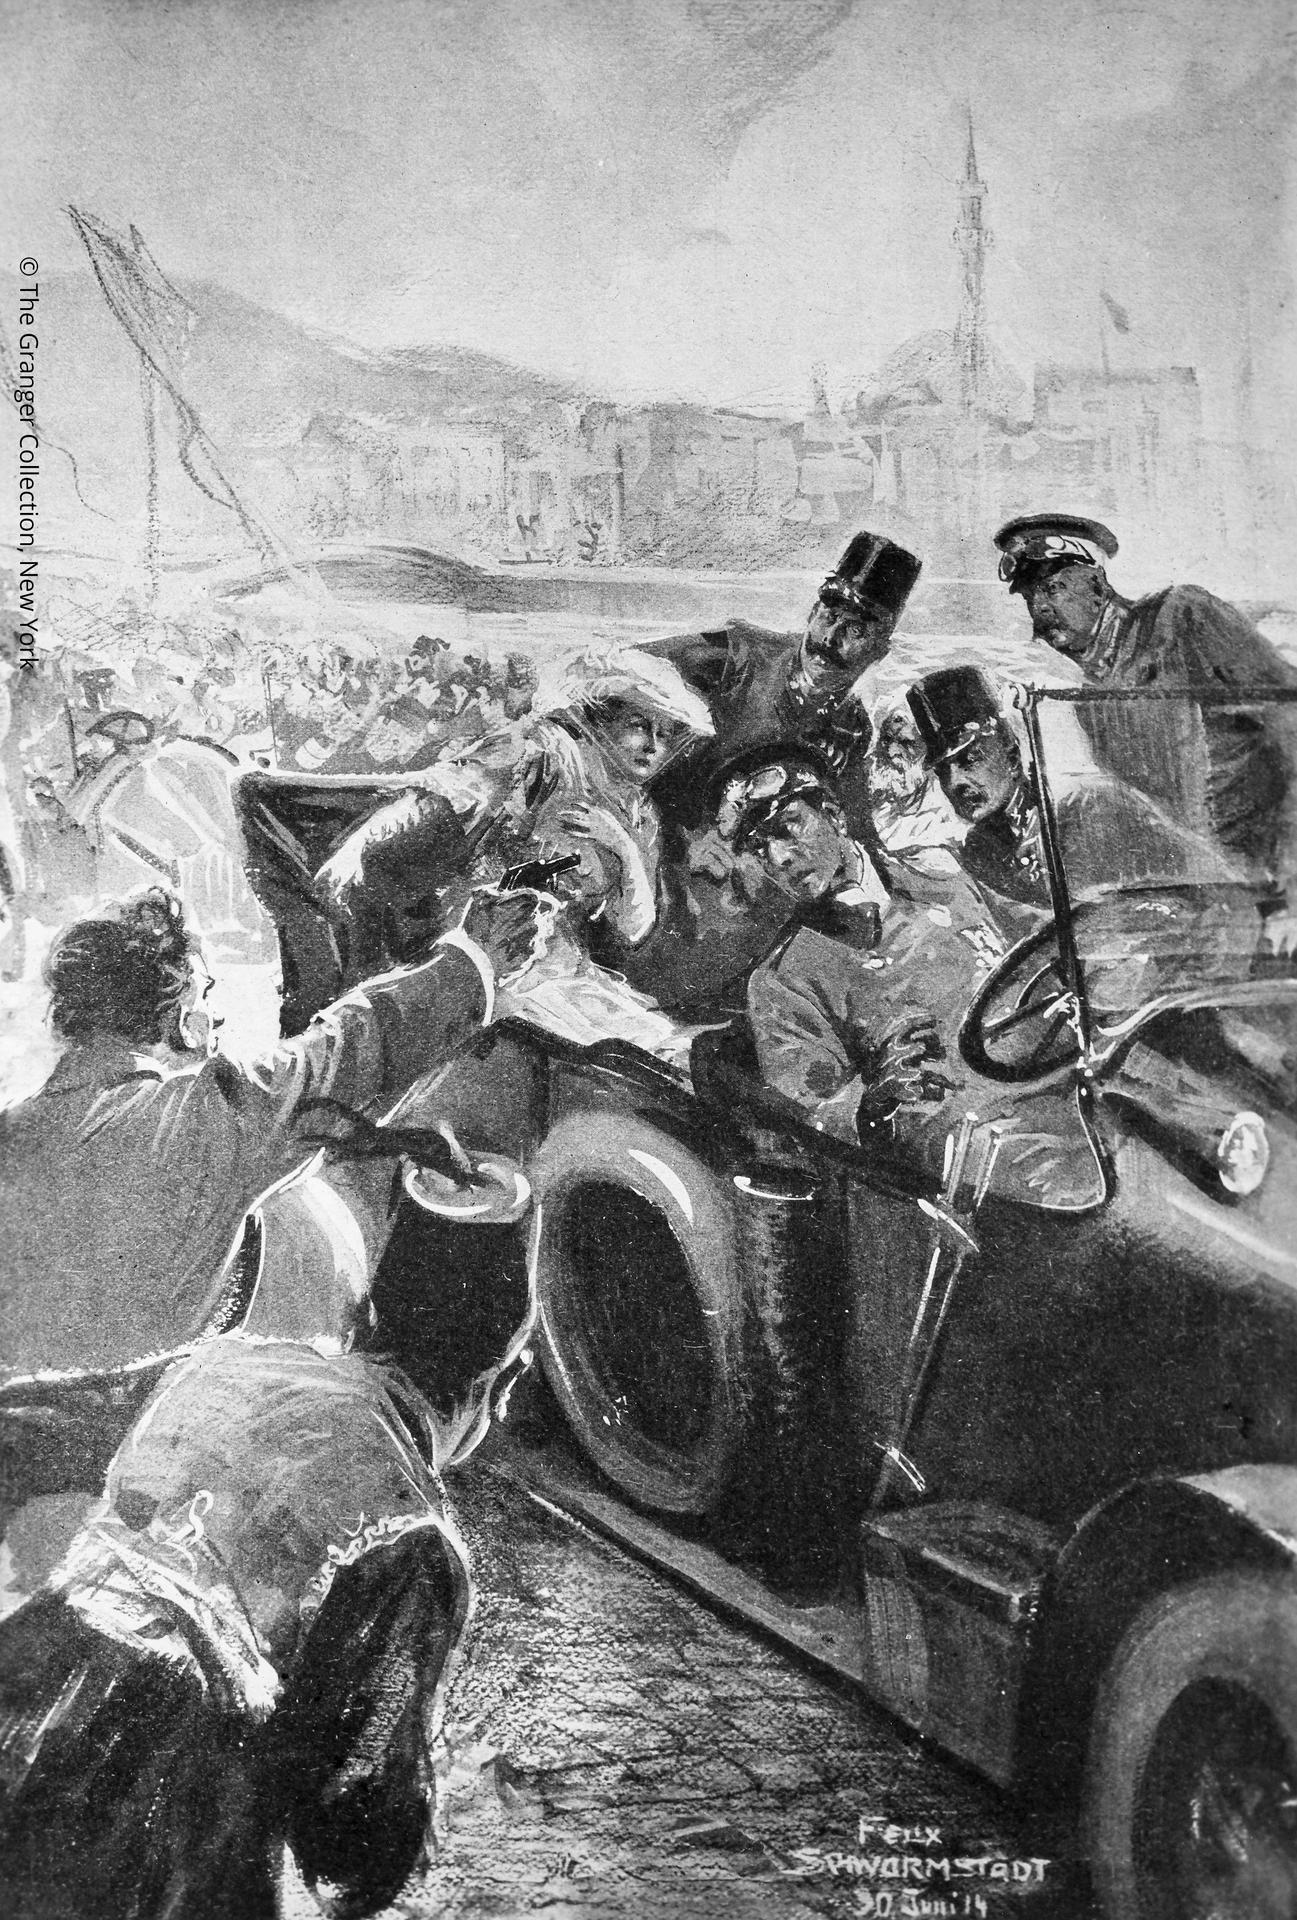 Painting depicting the assassination of Archduke Franz Ferdinand and Archduchess Sophie at Sarajevo, Bosnia, on 28 June 1914, by Felix Schwarmstadt. FRANCIS FERDINAND ?(1863-1914).